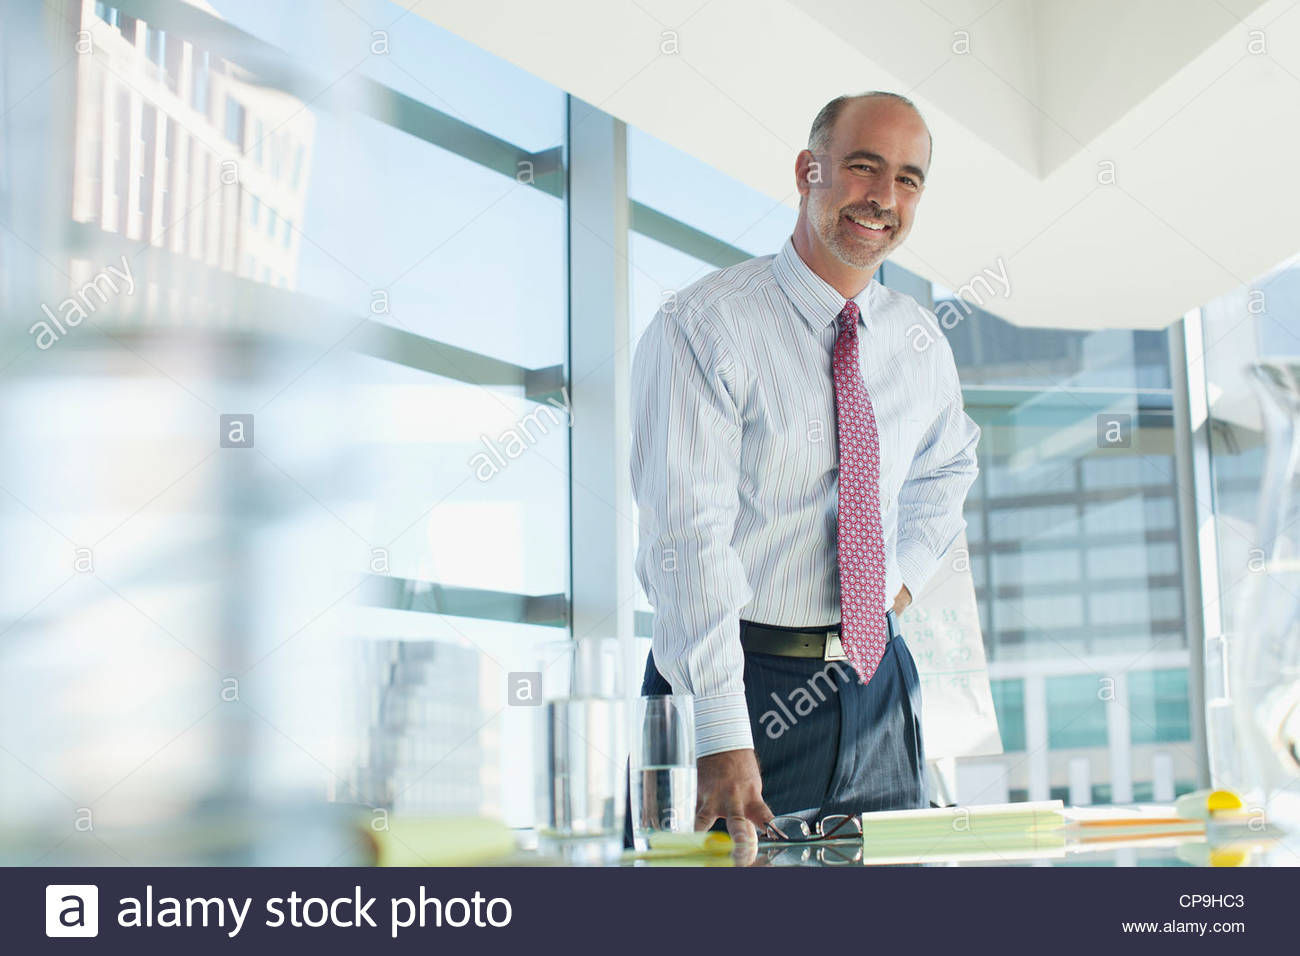 50-54 years,ambition,bald,business,business attire,businessman,california,color image,conference room,confidence,copy - Stock Image